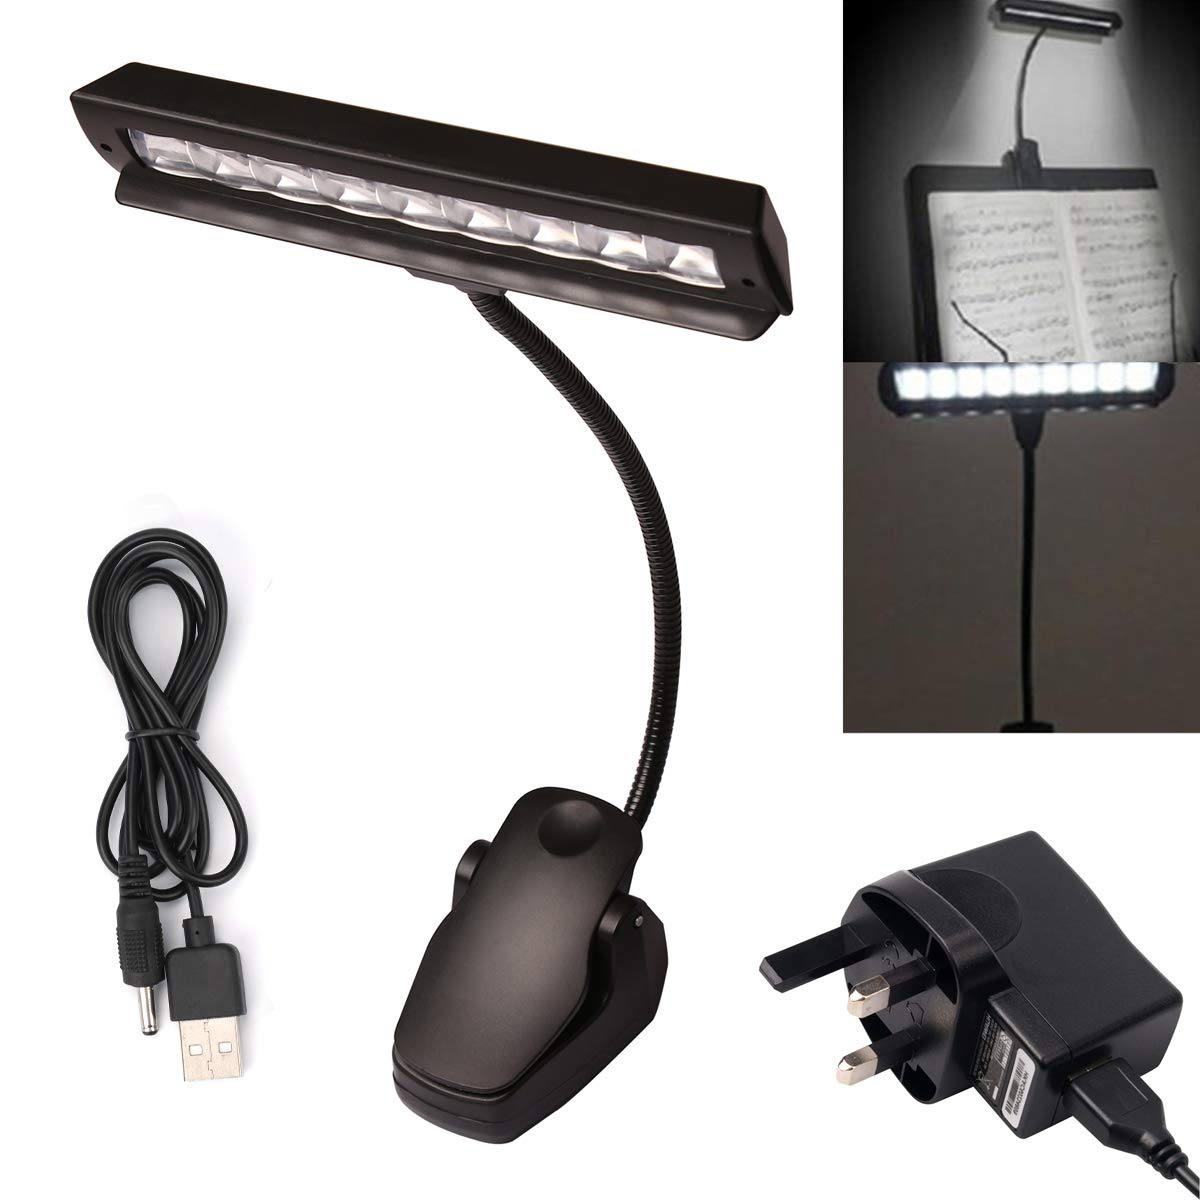 9 LED Clip-on Light Flexible Music Stand Reading Light Bed Table Desk Lamp Black